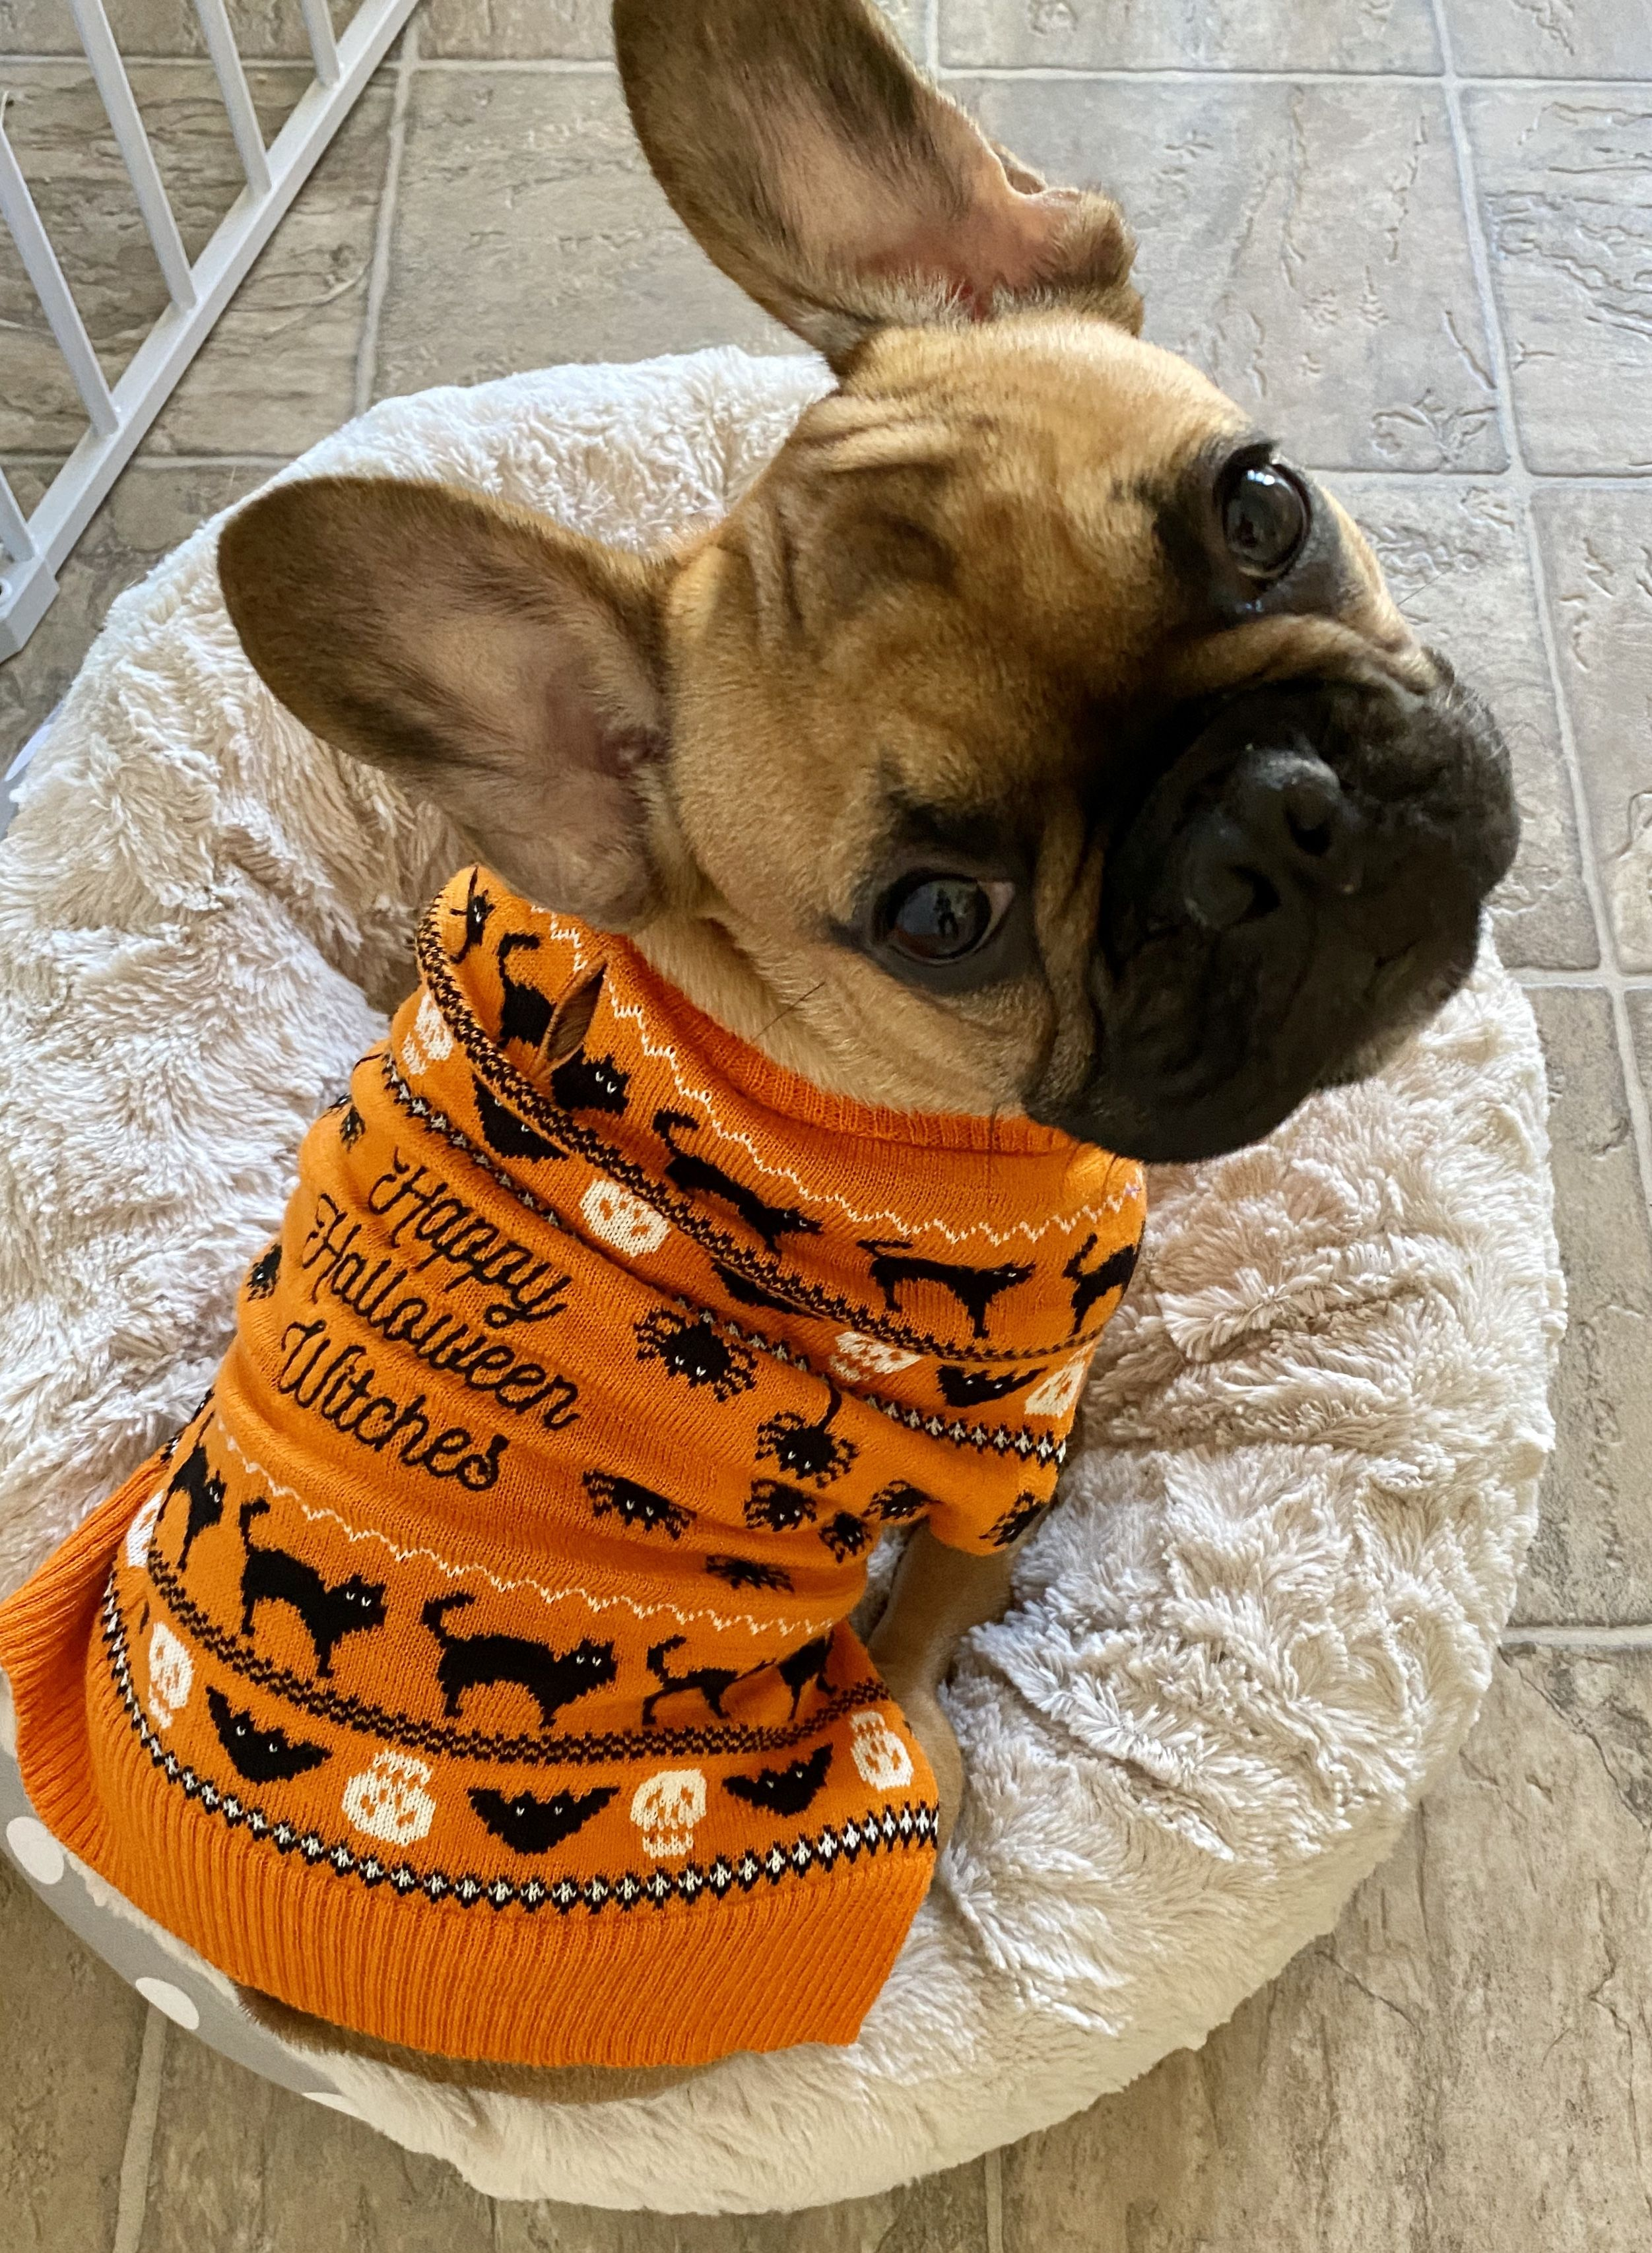 Chaz in a Halloween Sweater